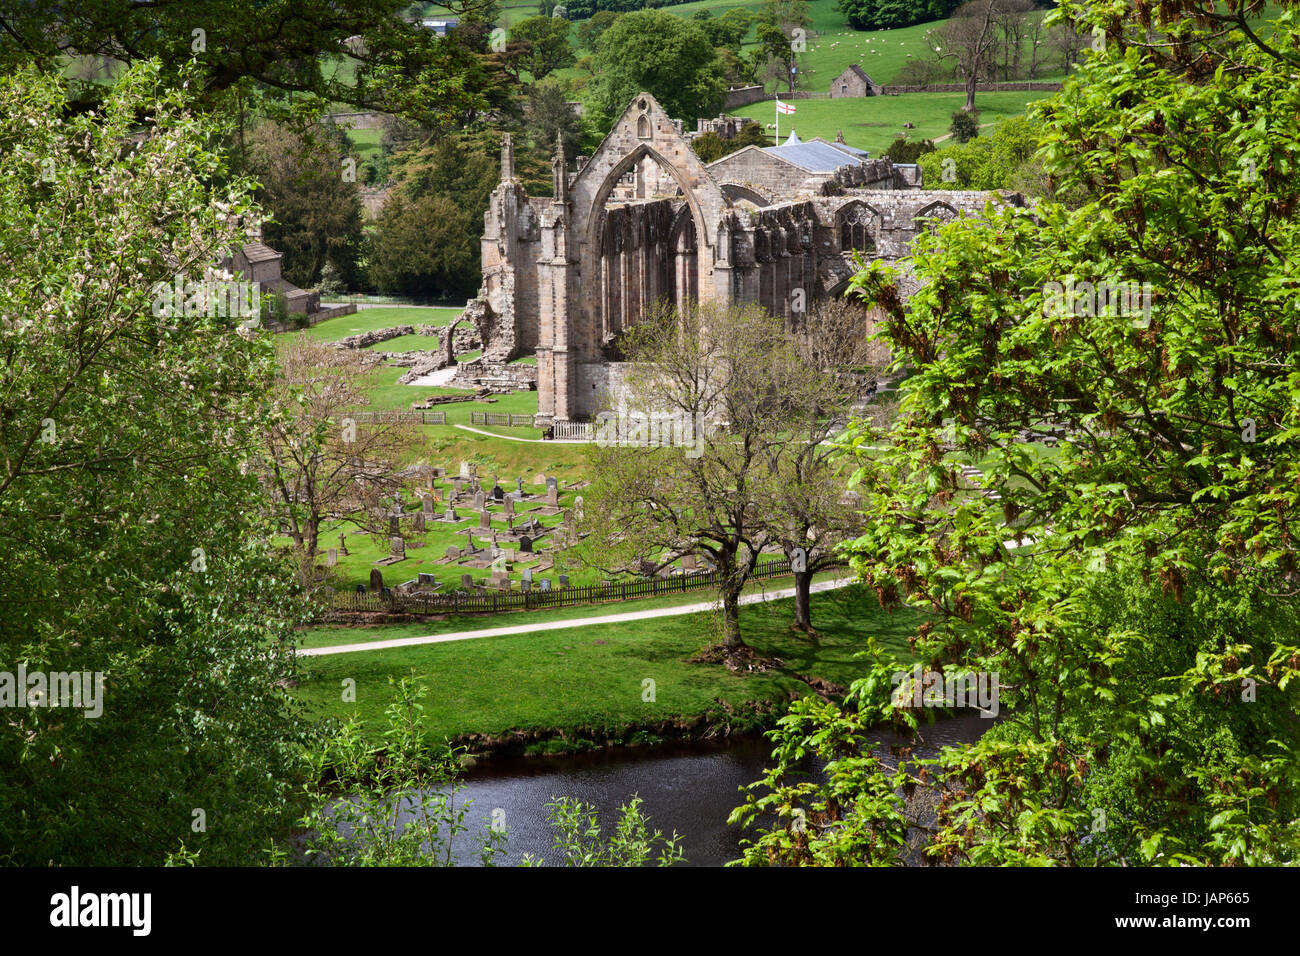 Bolton Abbey Priory, Wharfedale, Yorkshire Dales - Stock Image